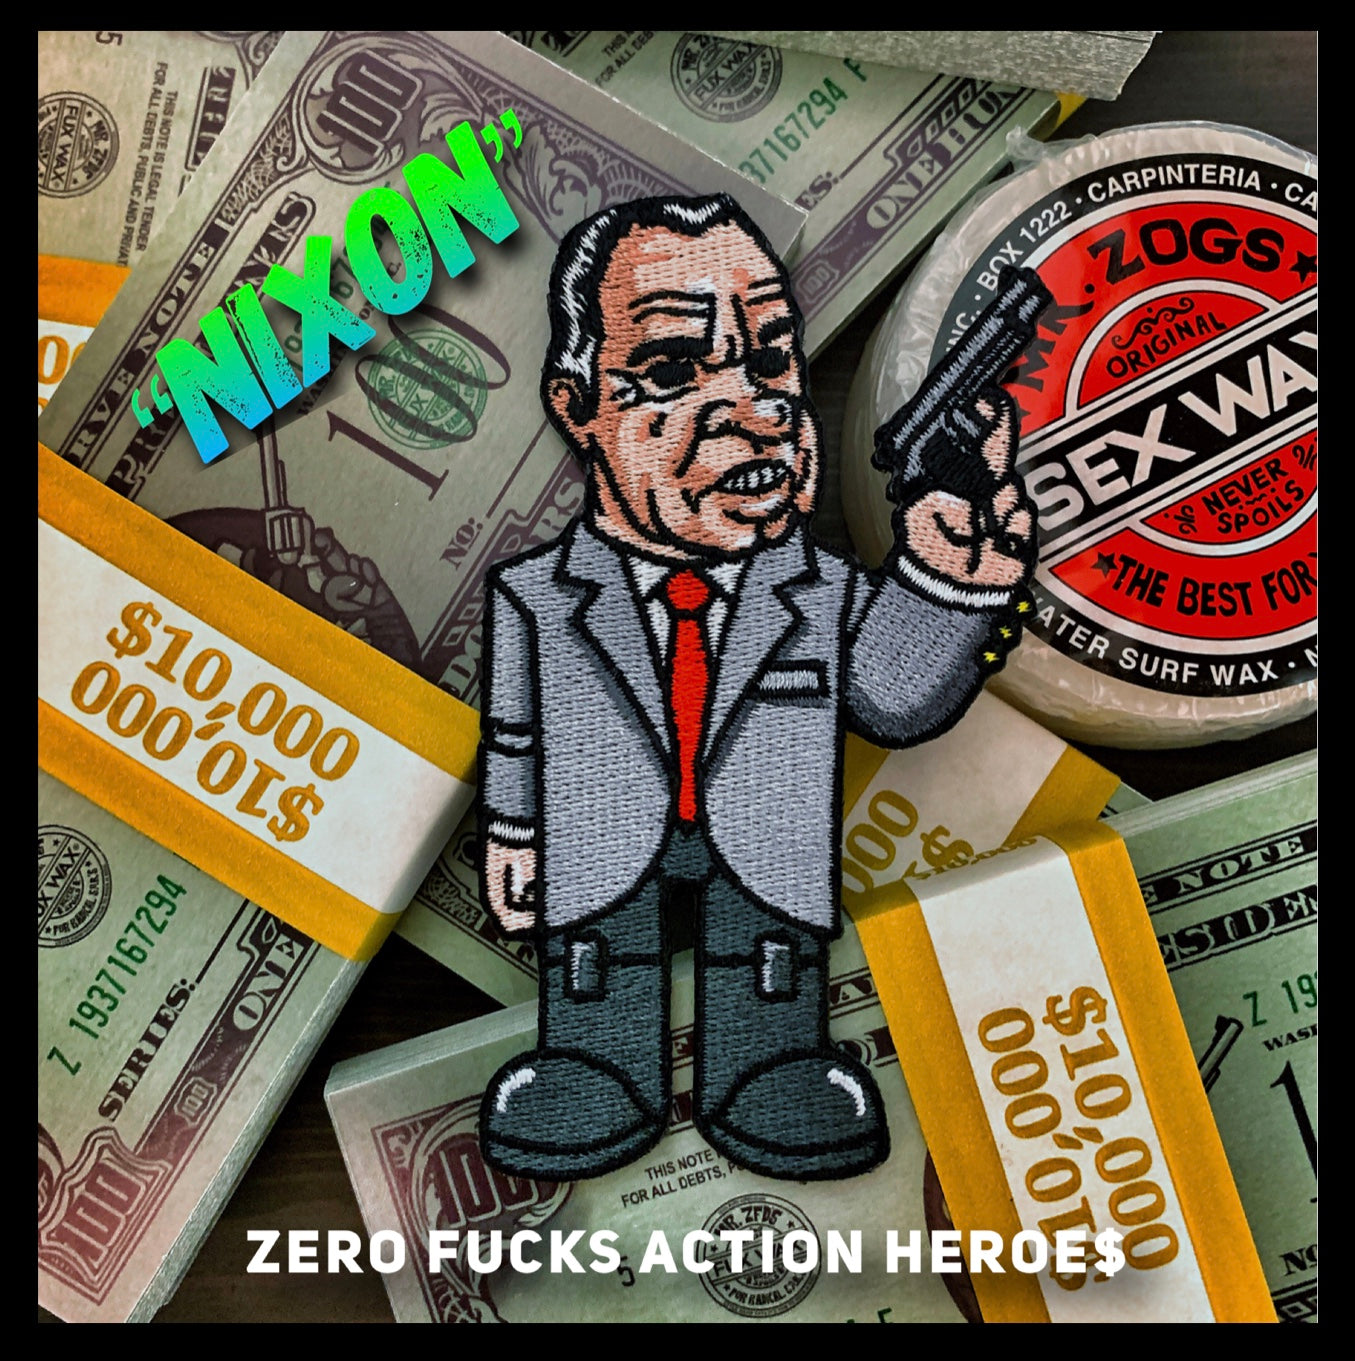 Zero Fucks Action Heroes 'POINT BREAK' Morale Patch Series - Nixon